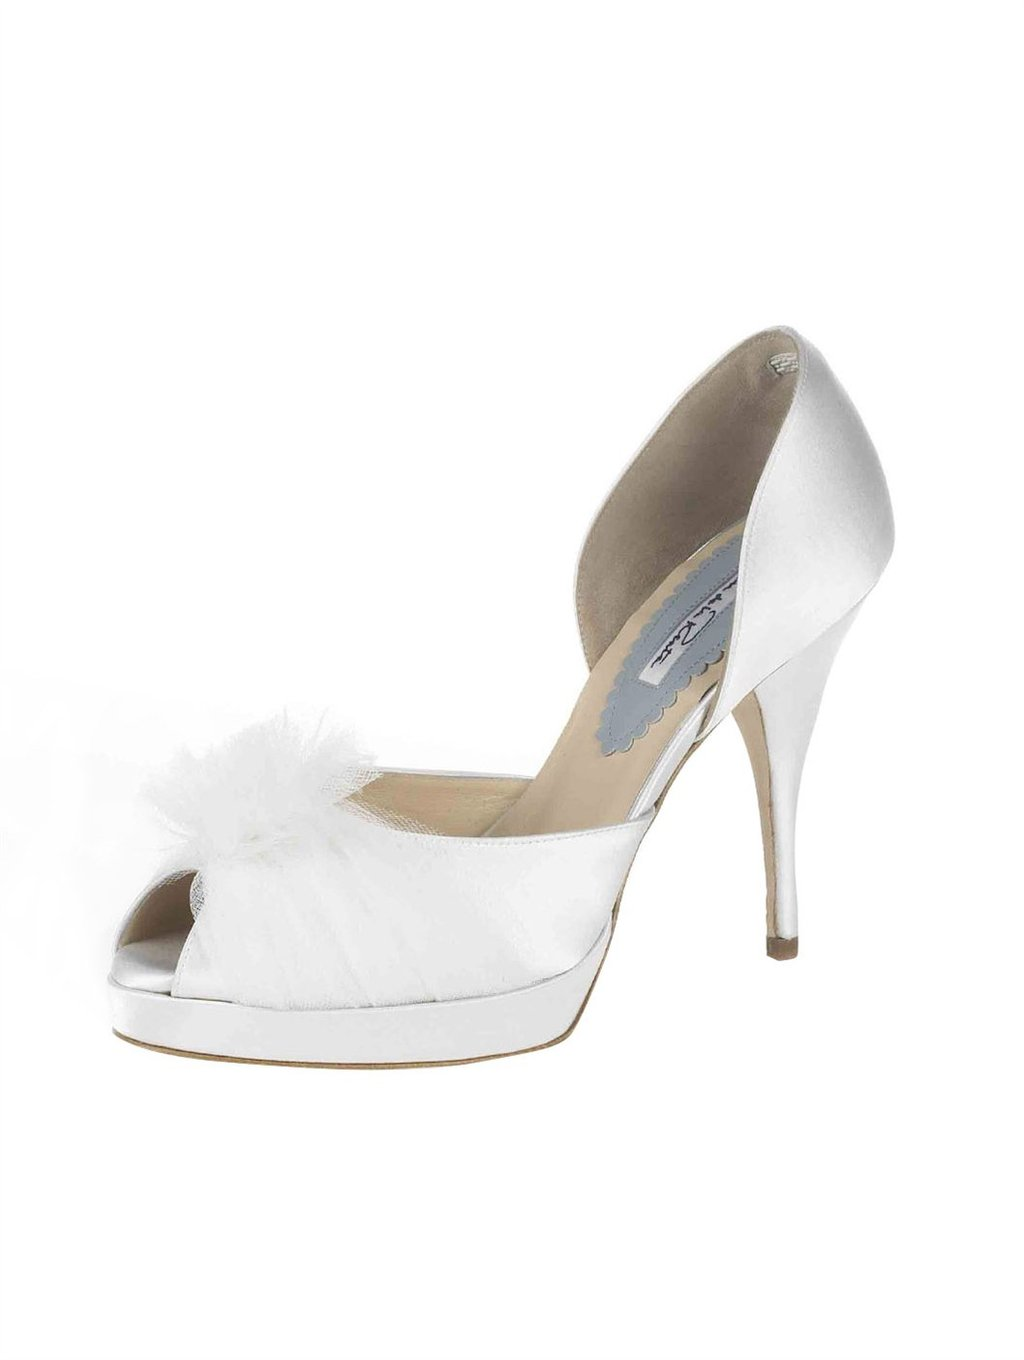 Bridal-shoes-oscar-de-la-renta-wedding-heels-white-satin-dorsay-tulle-poof.full